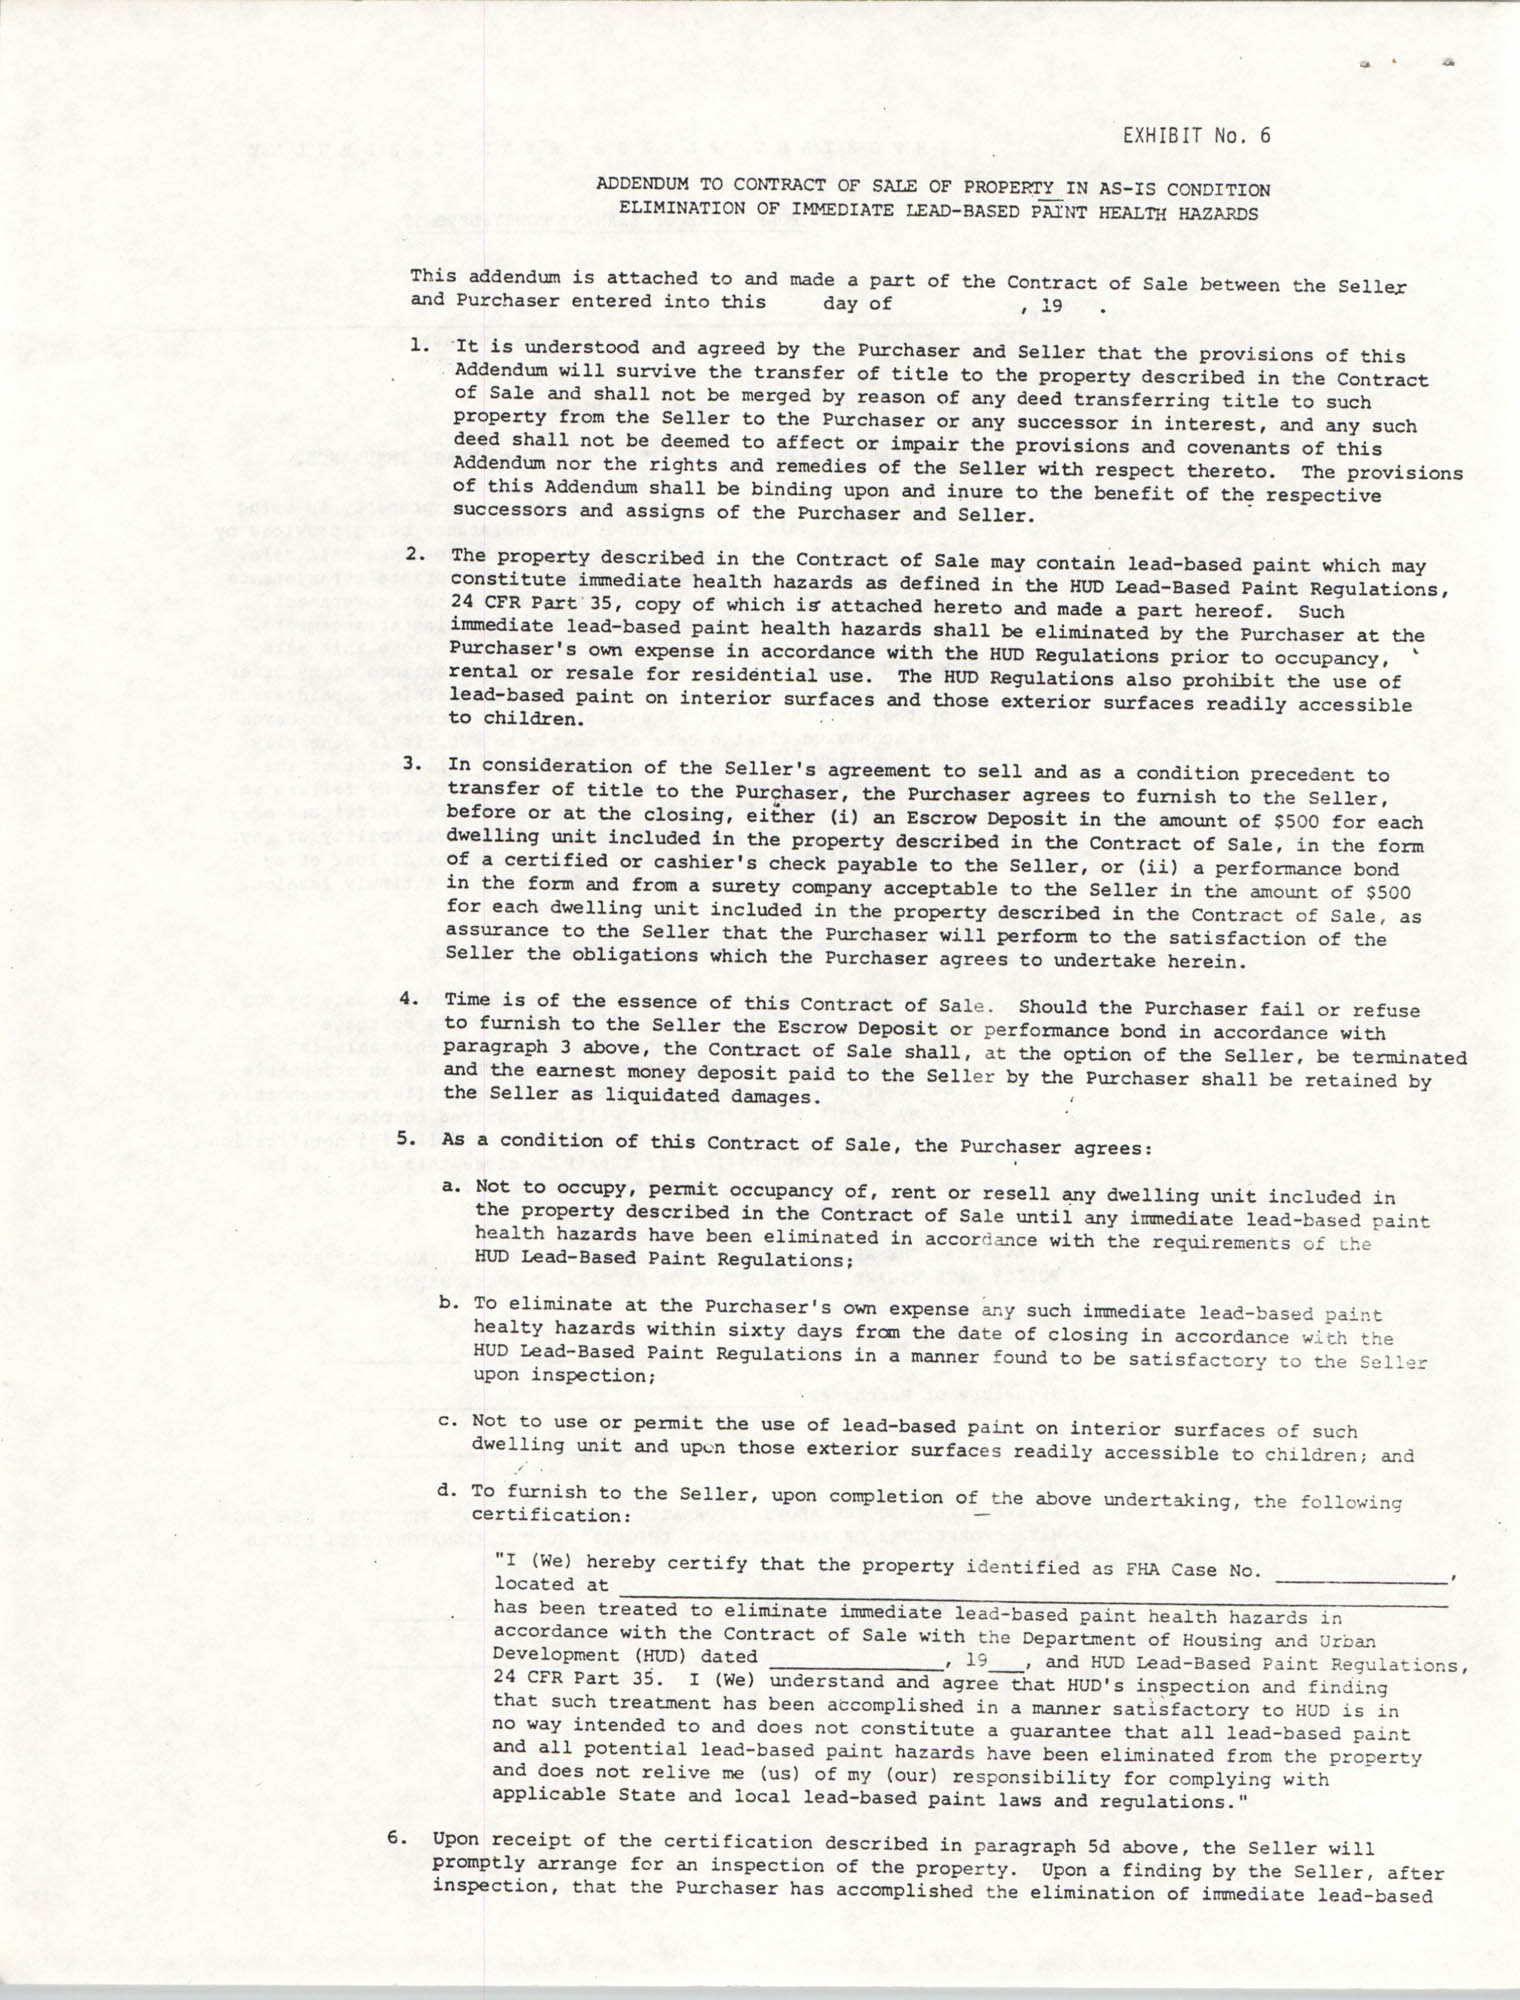 Addendum to Contract of Sale of Property in As-Is Condition, Page 1